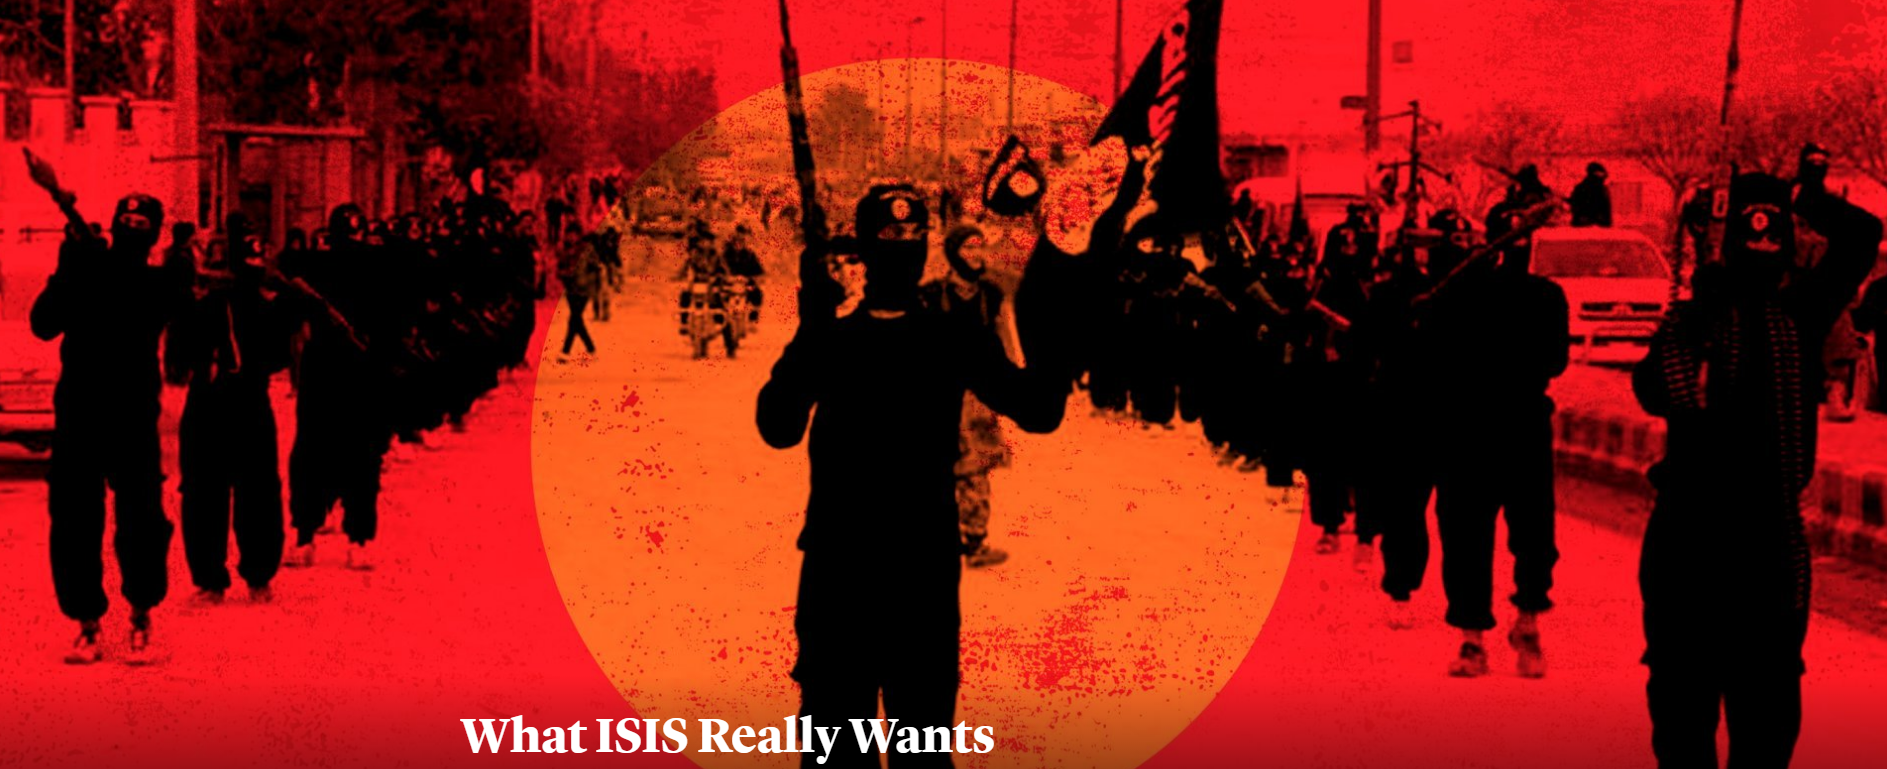 ISIS: Intellectual Roots and the Question of Religious Authenticity